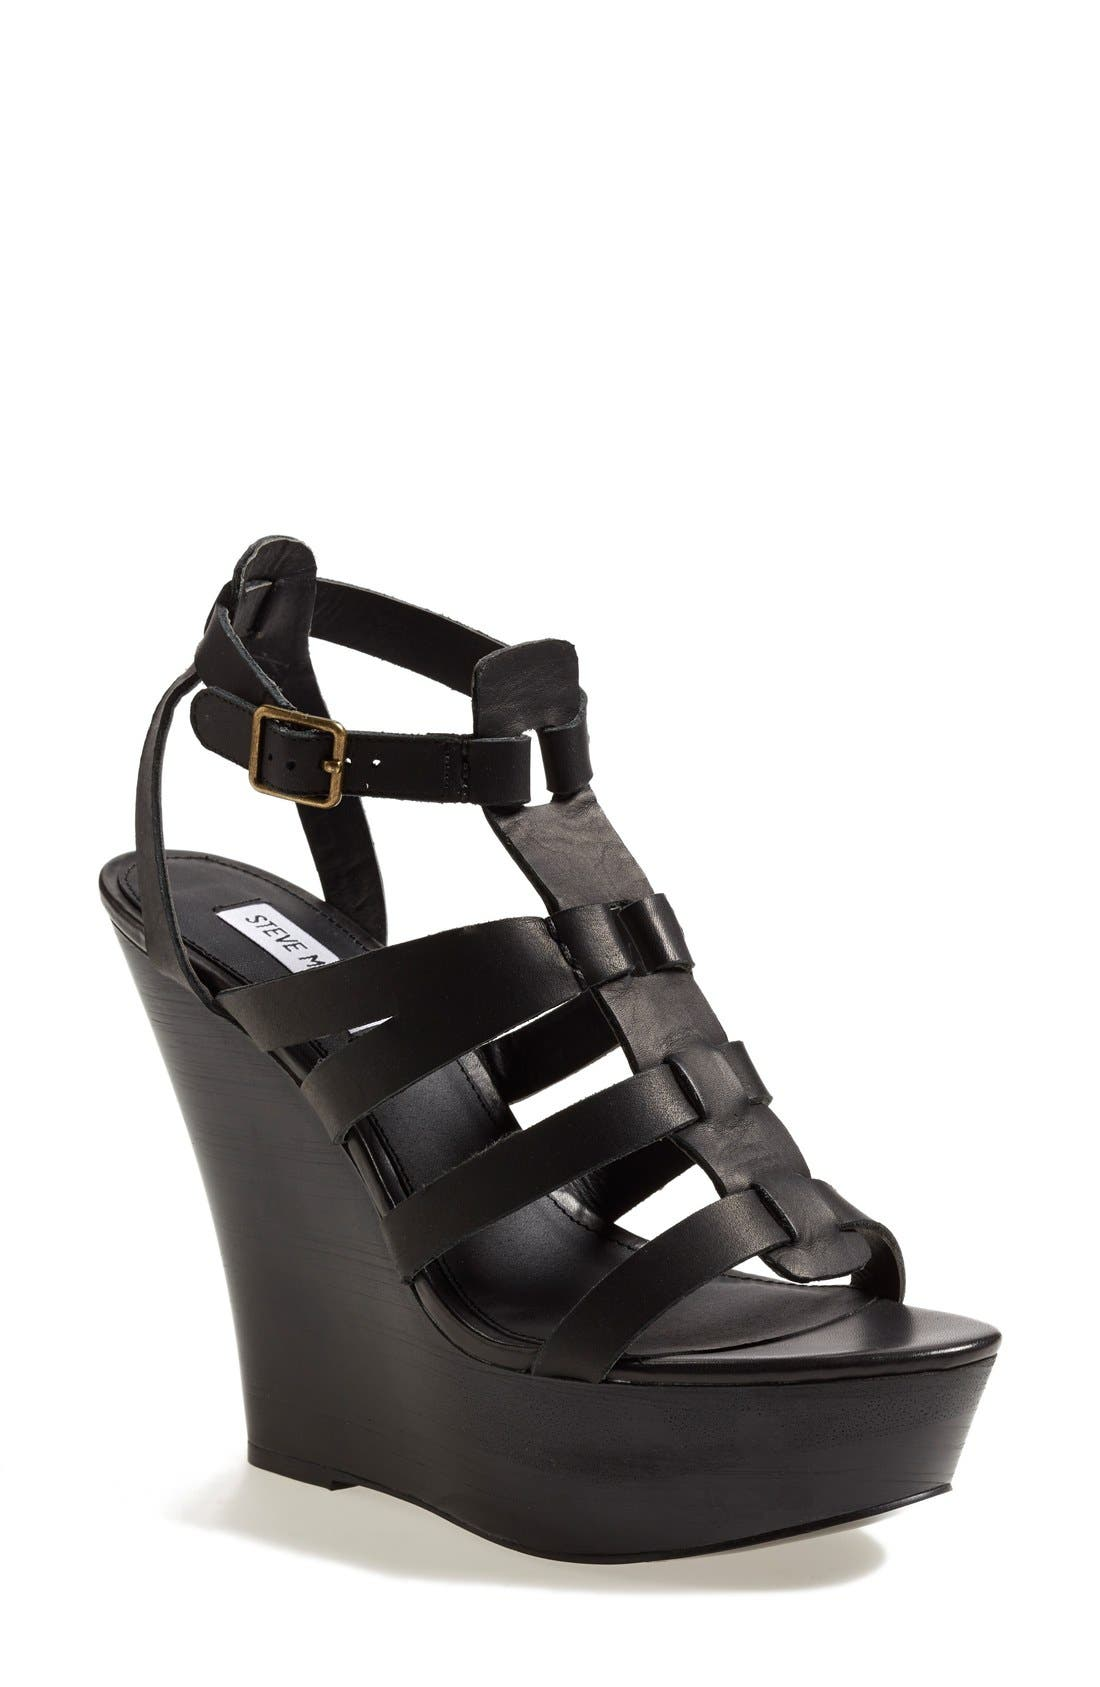 Alternate Image 1 Selected - Steve Madden 'Winslet' Wooden Wedge Sandal